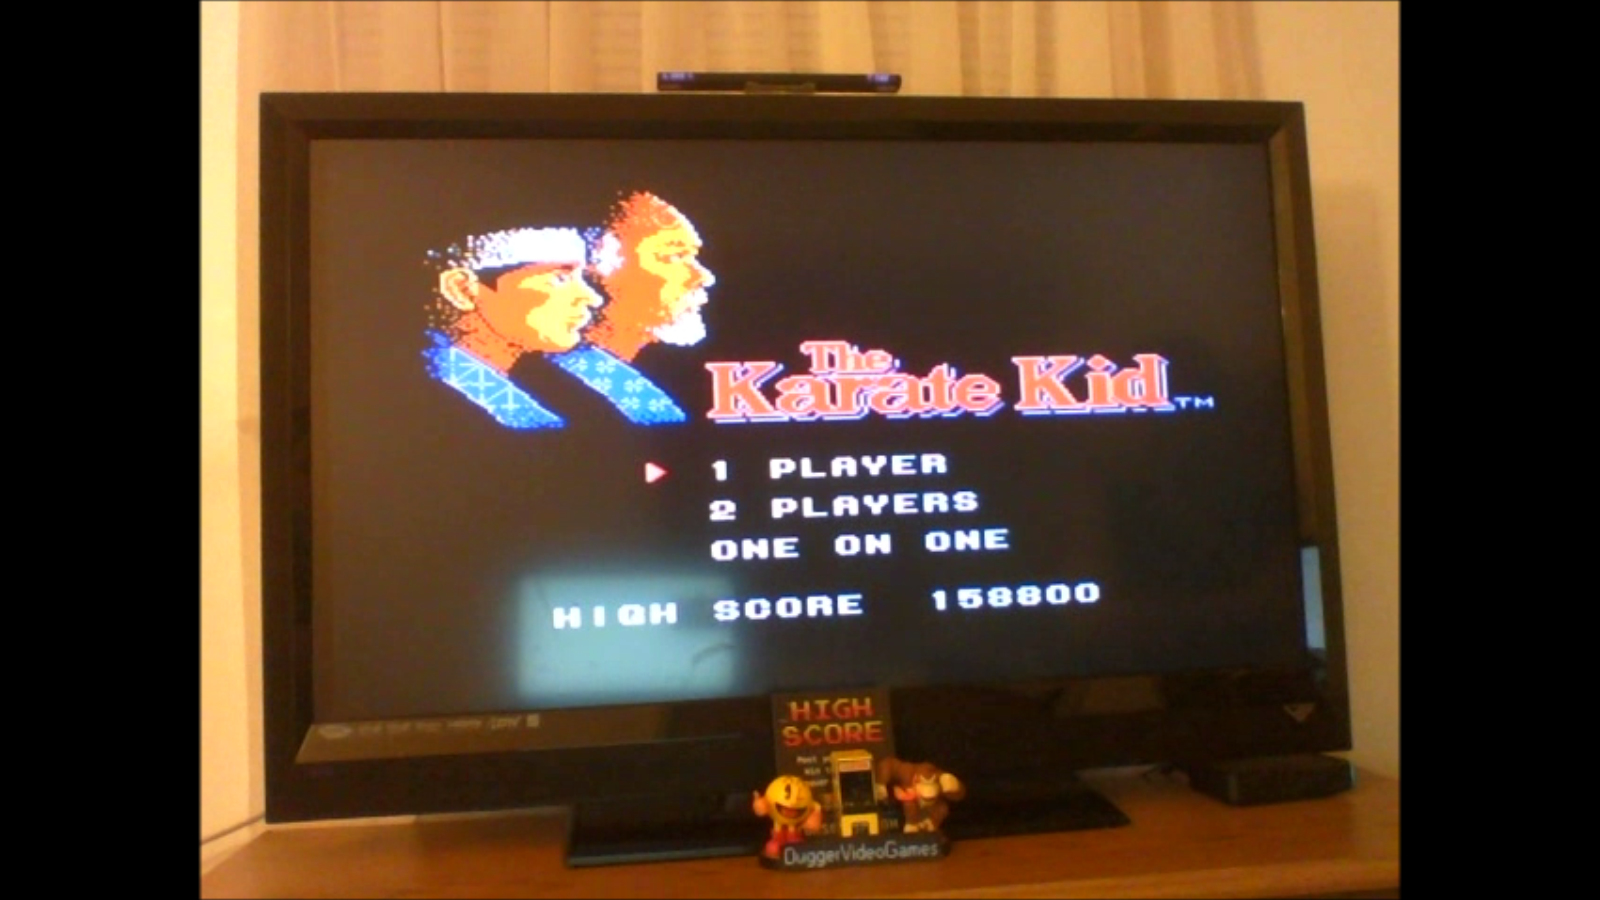 DuggerVideoGames: The Karate Kid (NES/Famicom Emulated) 158,800 points on 2017-03-01 03:34:53